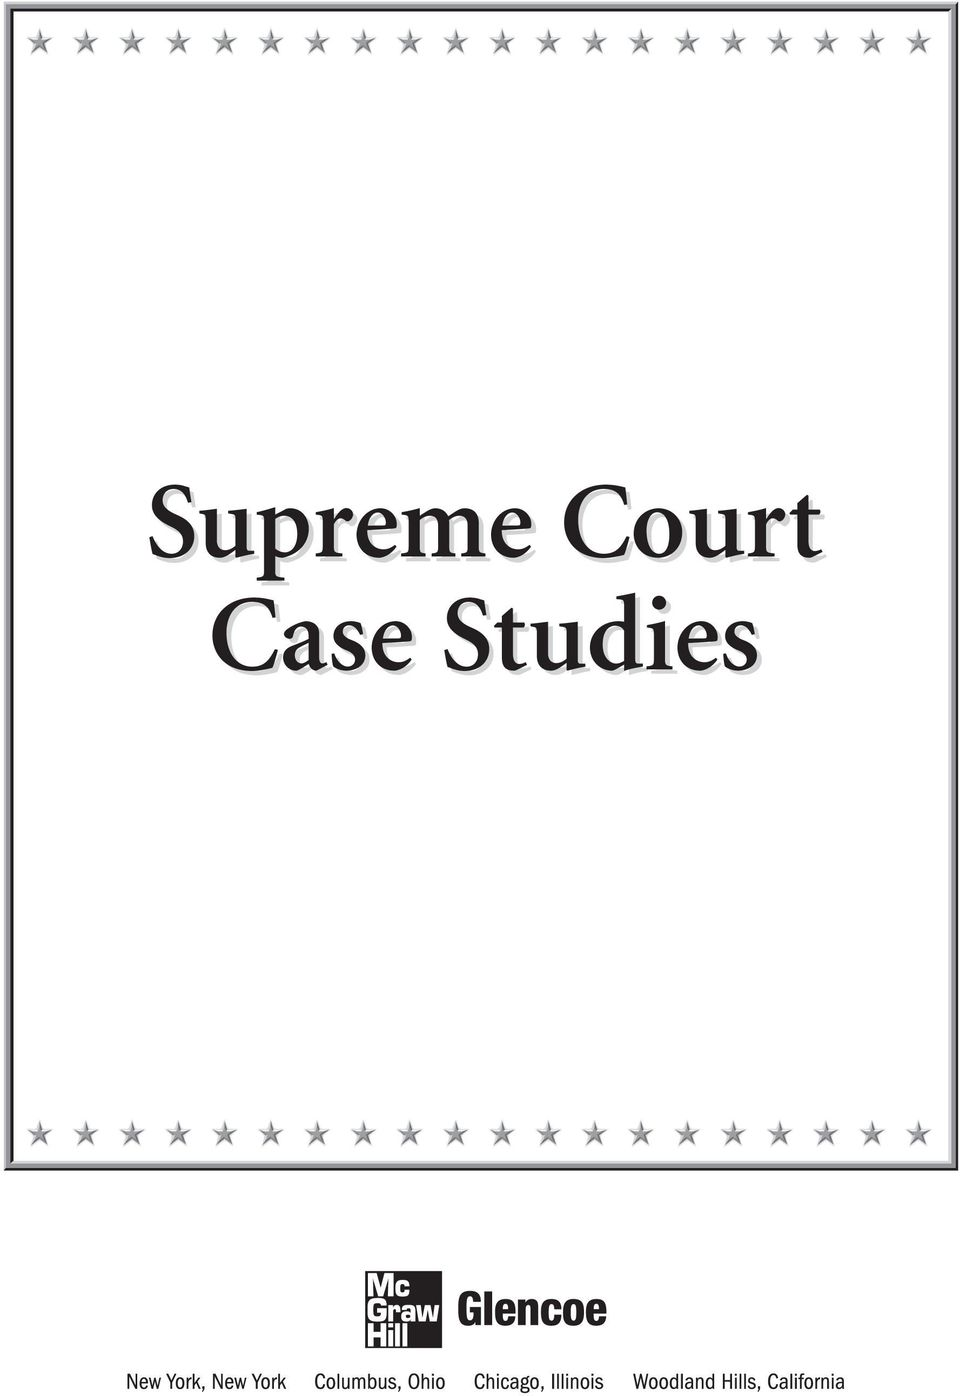 Supreme Court Case Studies PDF Page   Supreme Court Case Studies